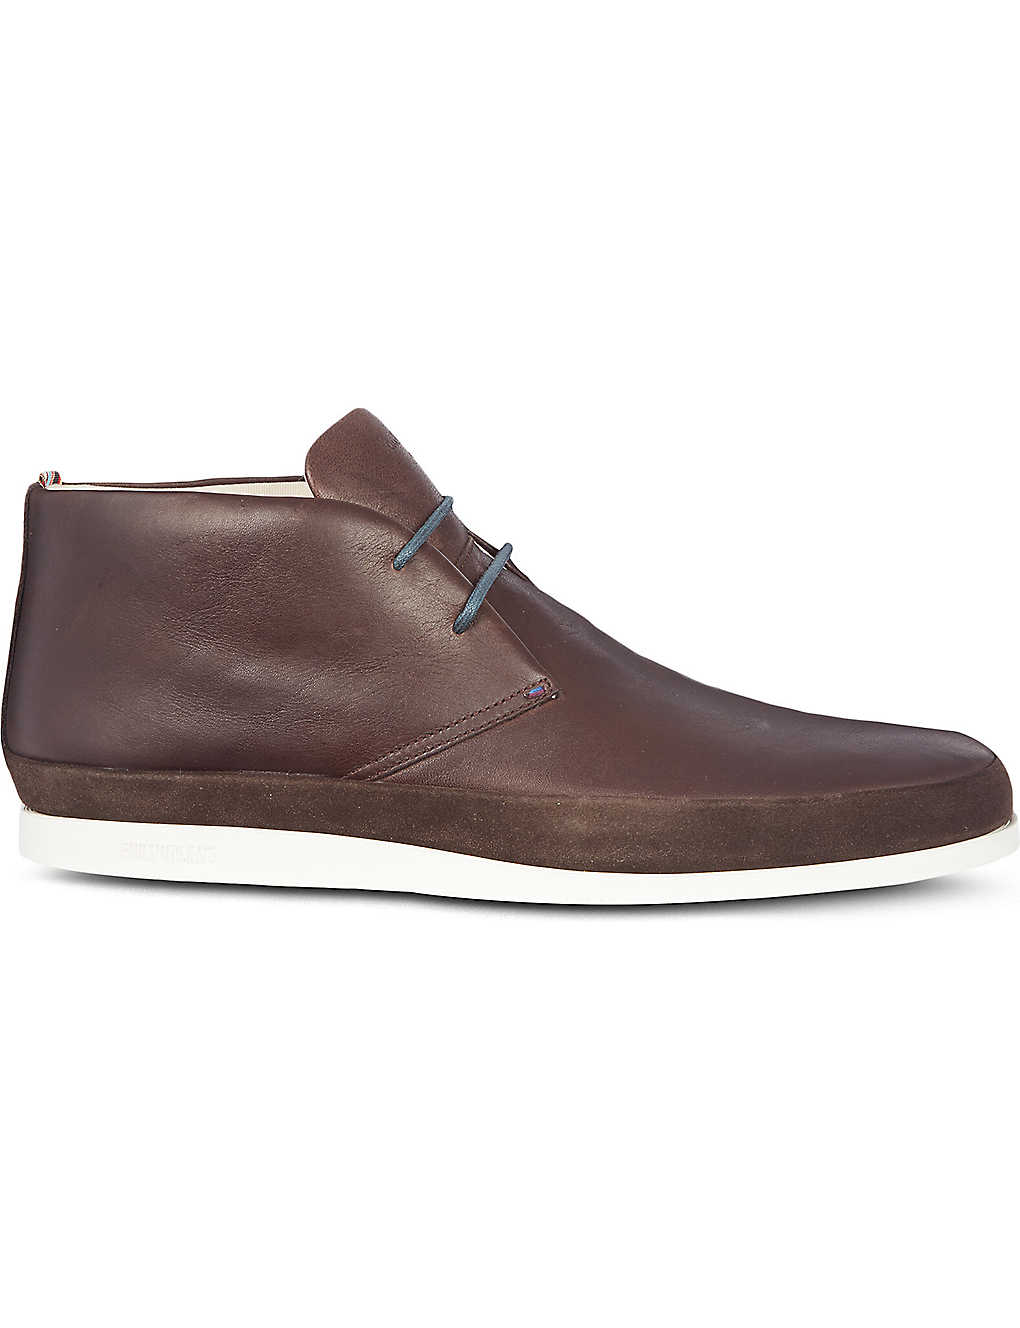 159b1608629 PAUL SMITH - Loomis Chukka boots | Selfridges.com